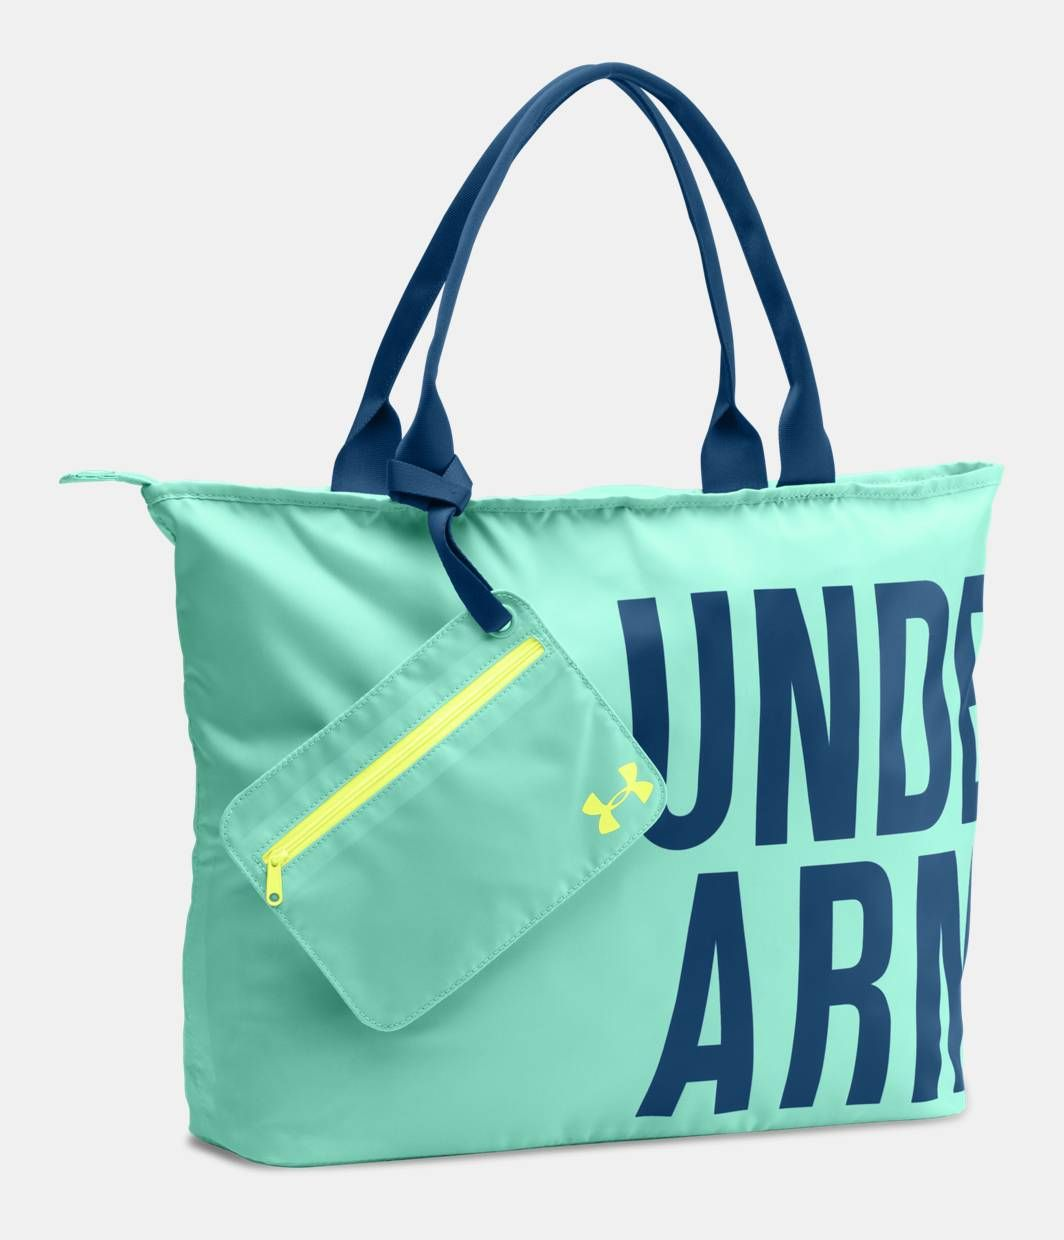 5091766d1 Cheap under armor tote Buy Online >OFF38% Discounted